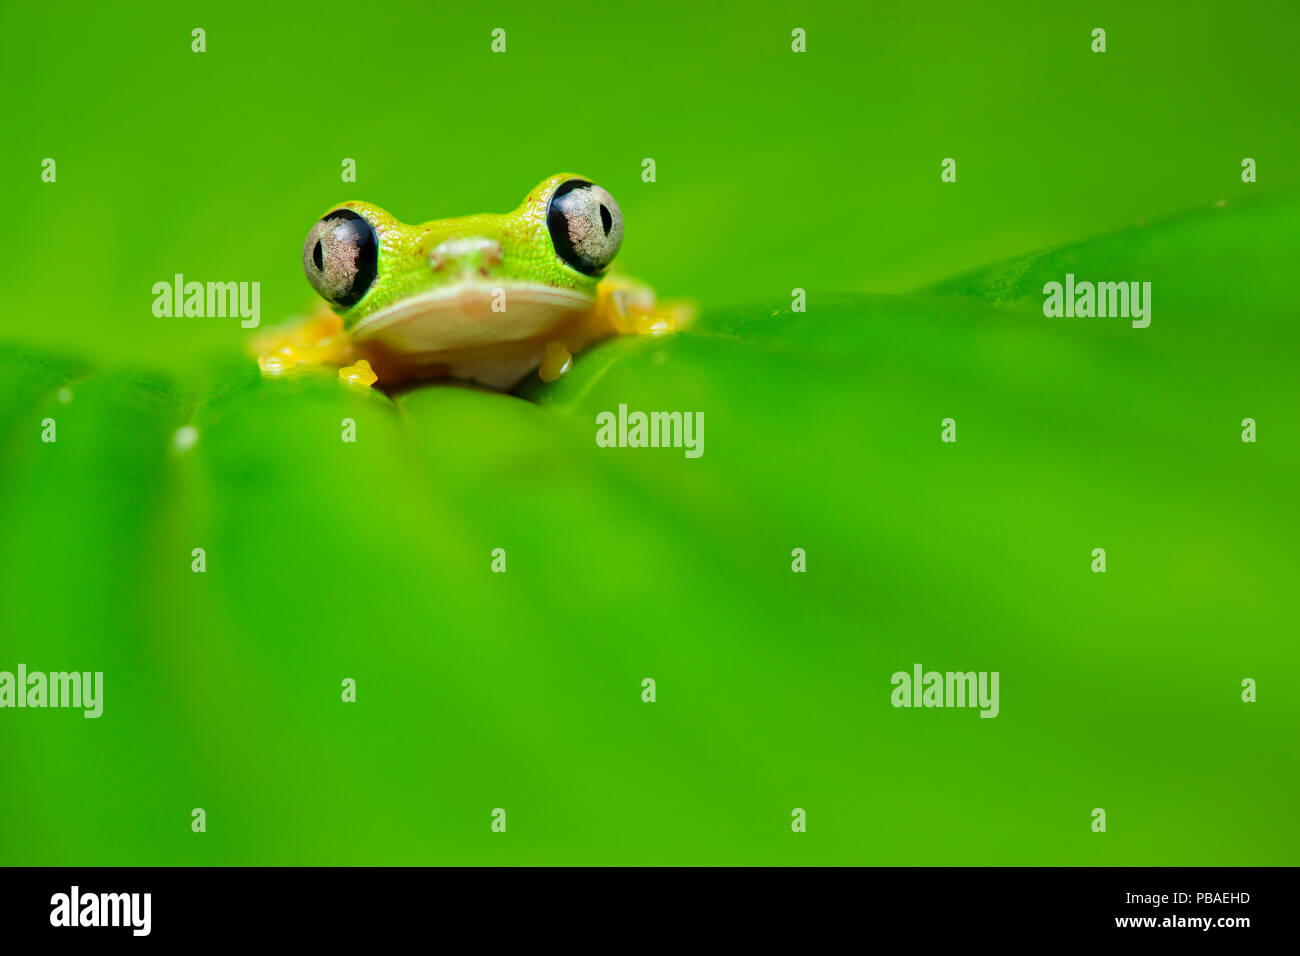 Lemur leaf frog (Agalychnis lemur) Central Caribbean foothills, Costa Rica. IUCN Red List critically endangered species. - Stock Image